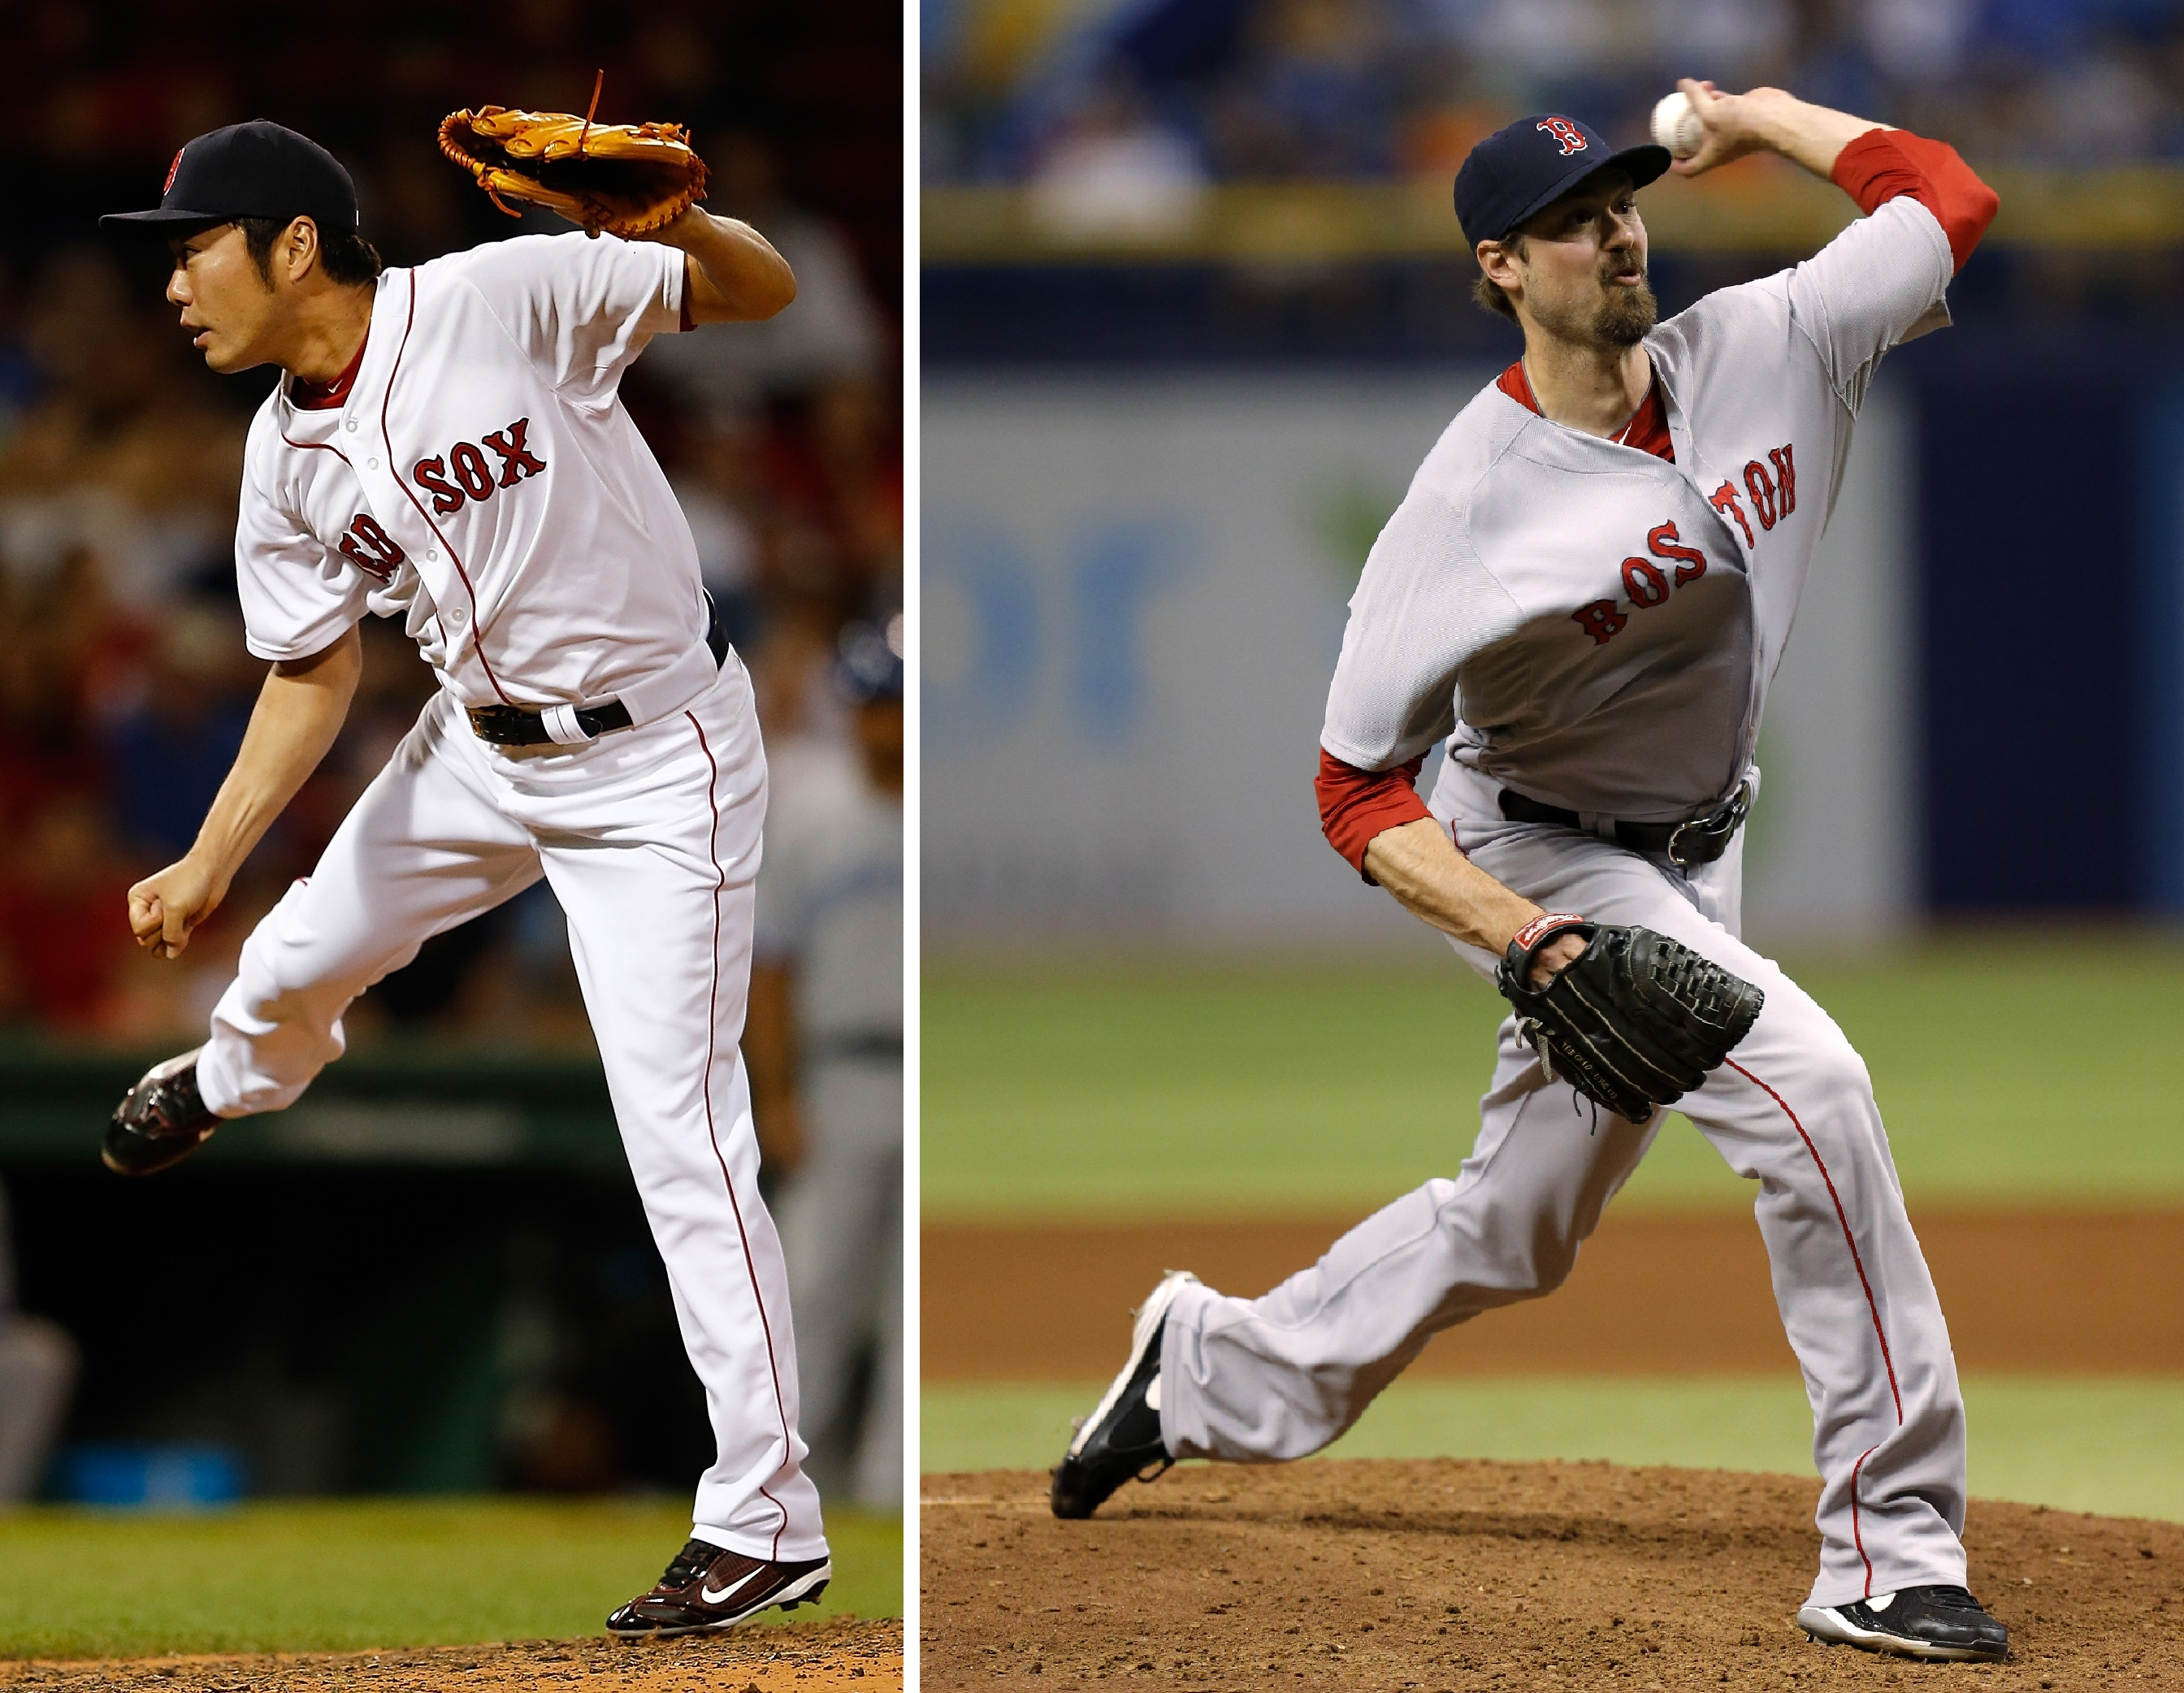 Miller, Koji Pitch as Members of the Red Sox for Perhaps the Final Time